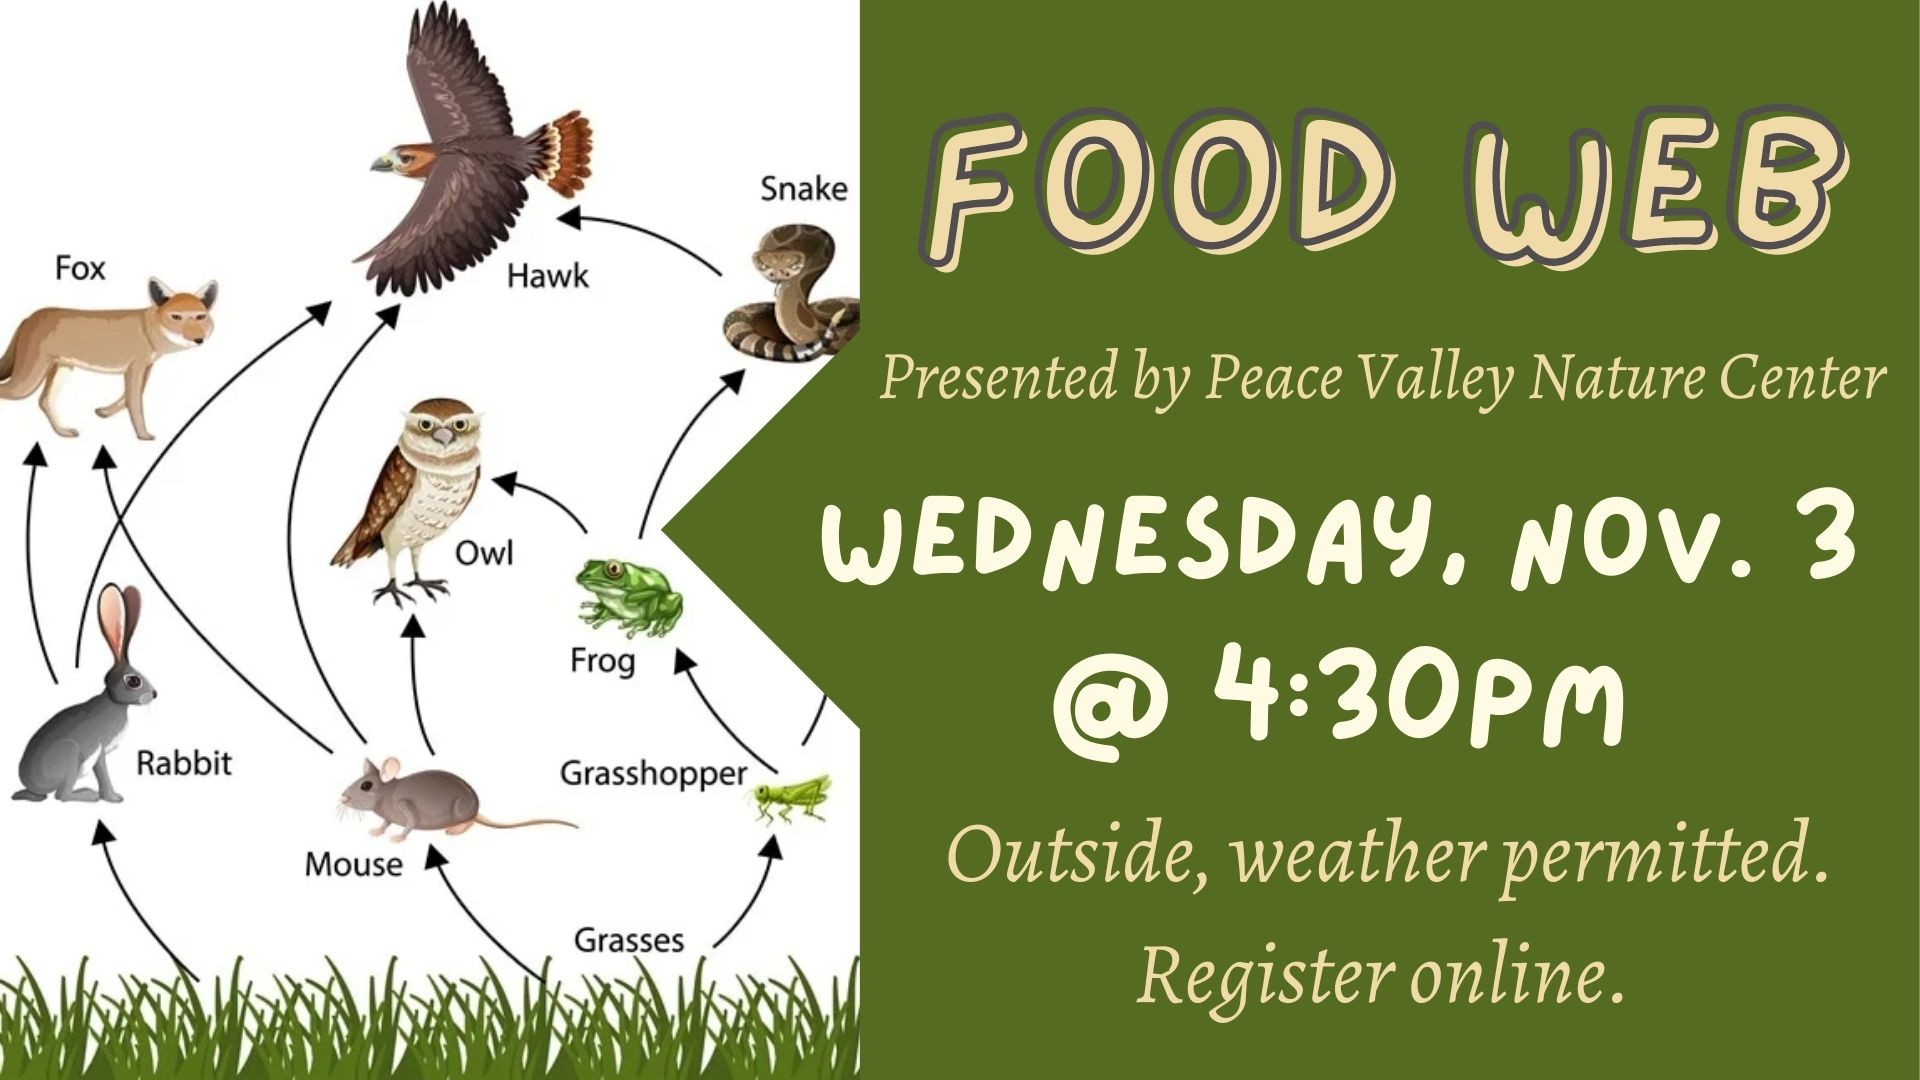 Peace Valley Nature Center: Food Web